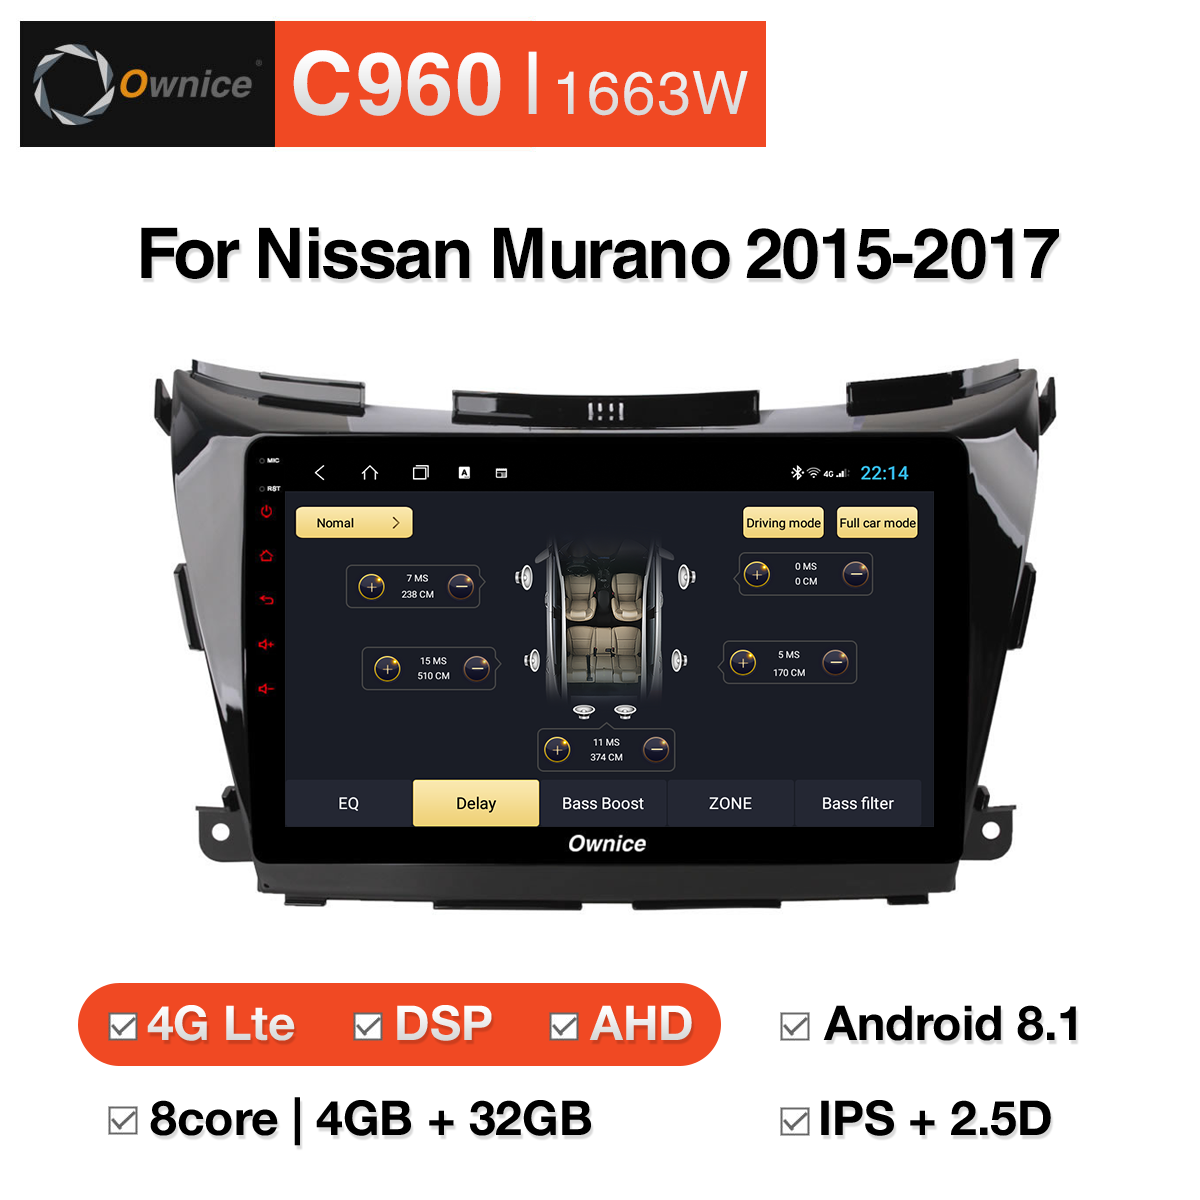 Tổng hợp DVD Android Ownice C960 cho Nissan